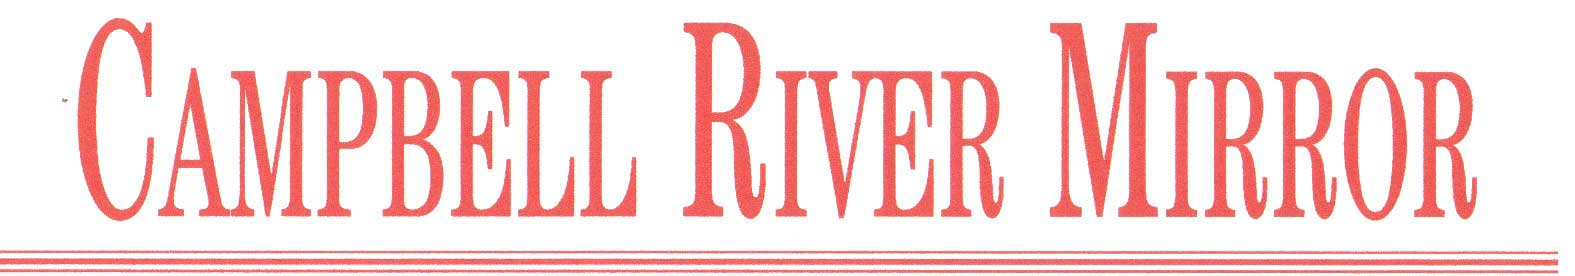 Campbell River Mirror - newspaper logo